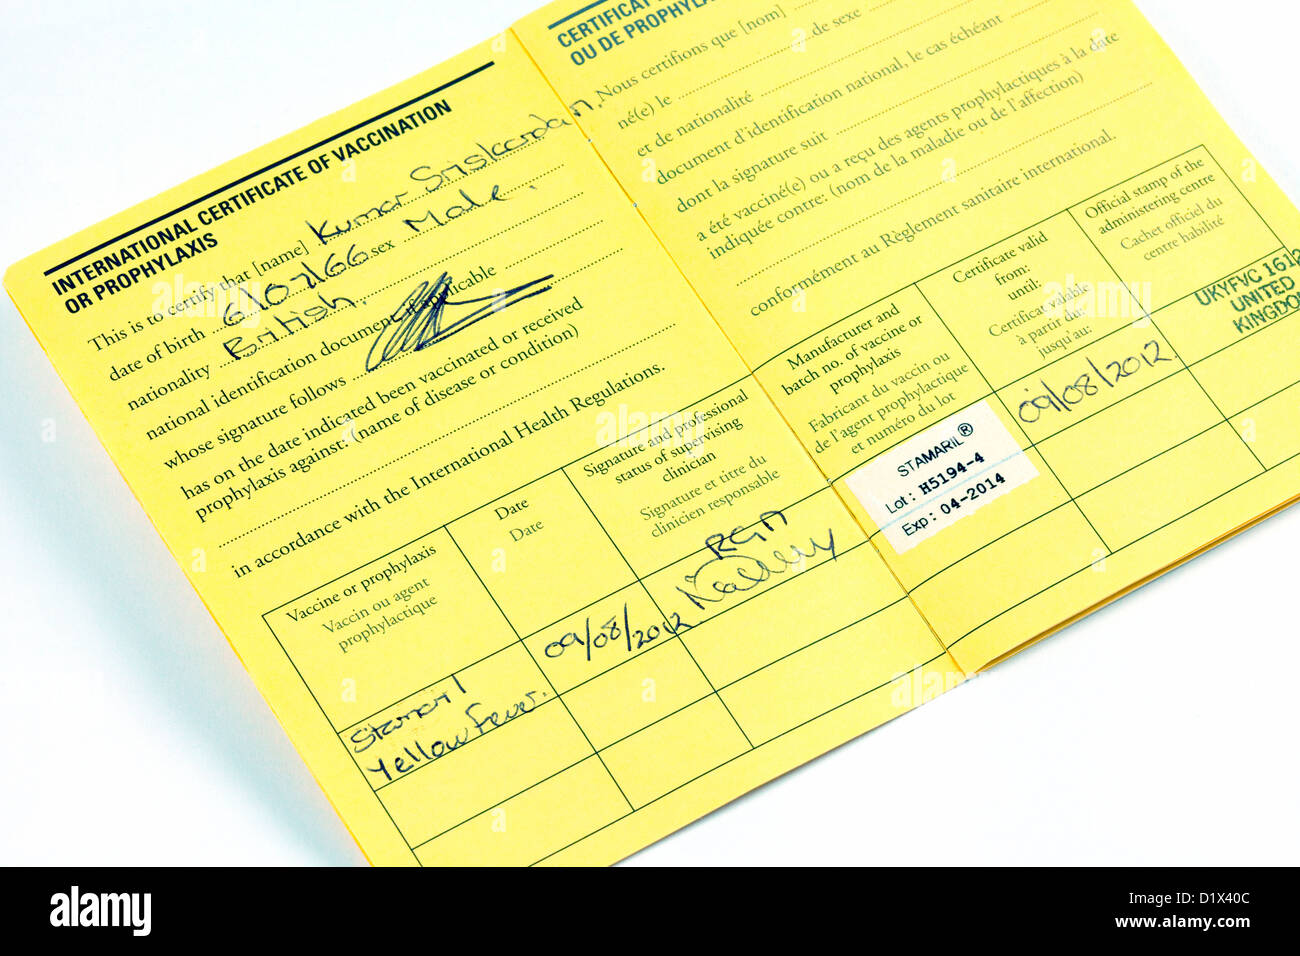 Yellow Fever Certificate High Resolution Stock Photography and Images -  Alamy